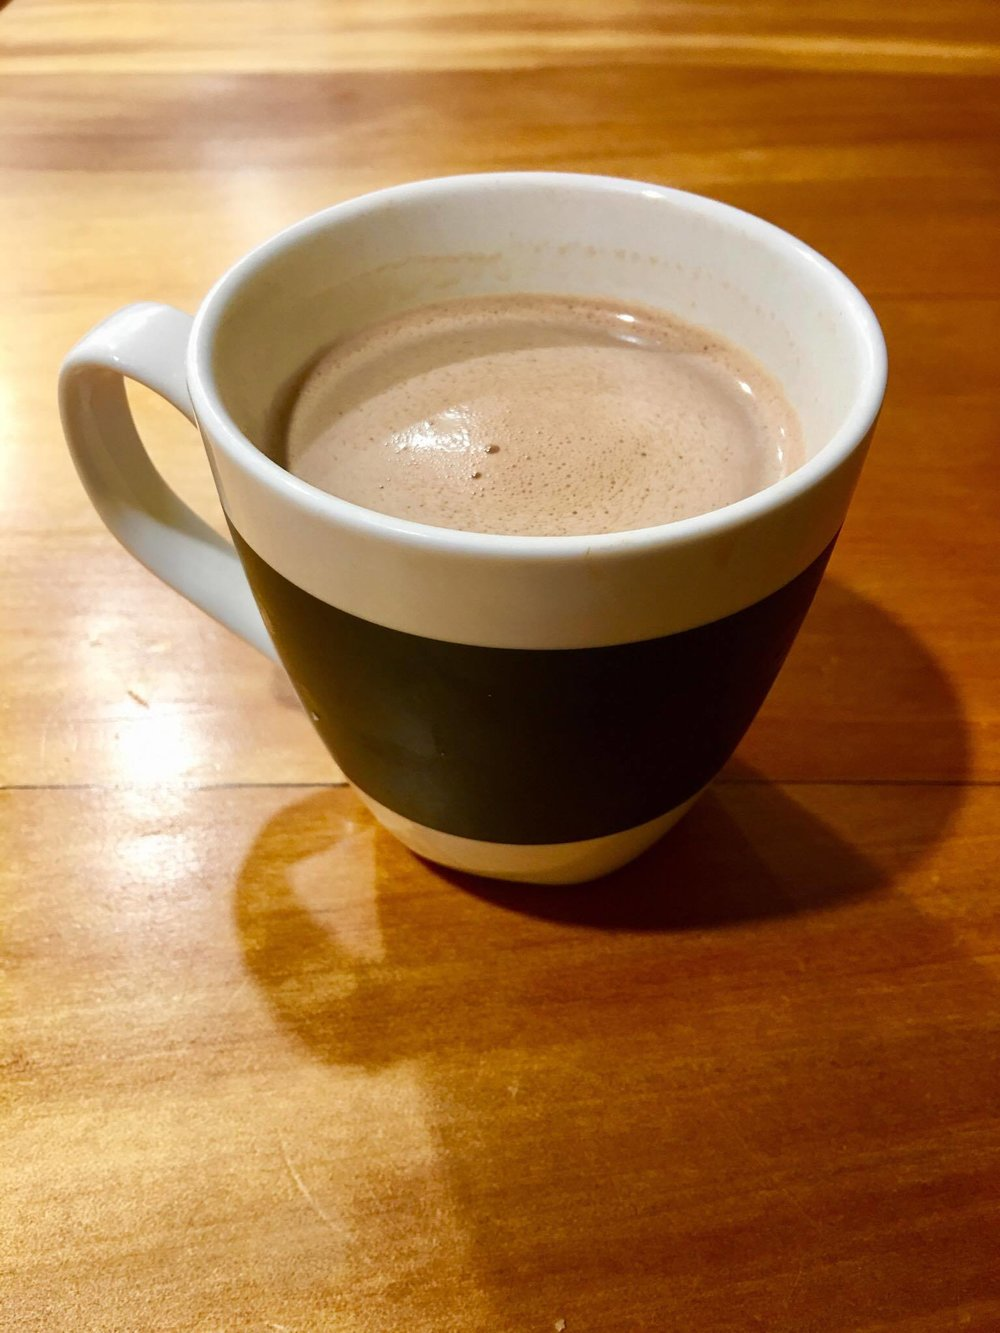 I made this hot chocolate especially for this photo - I am THAT dedicated!